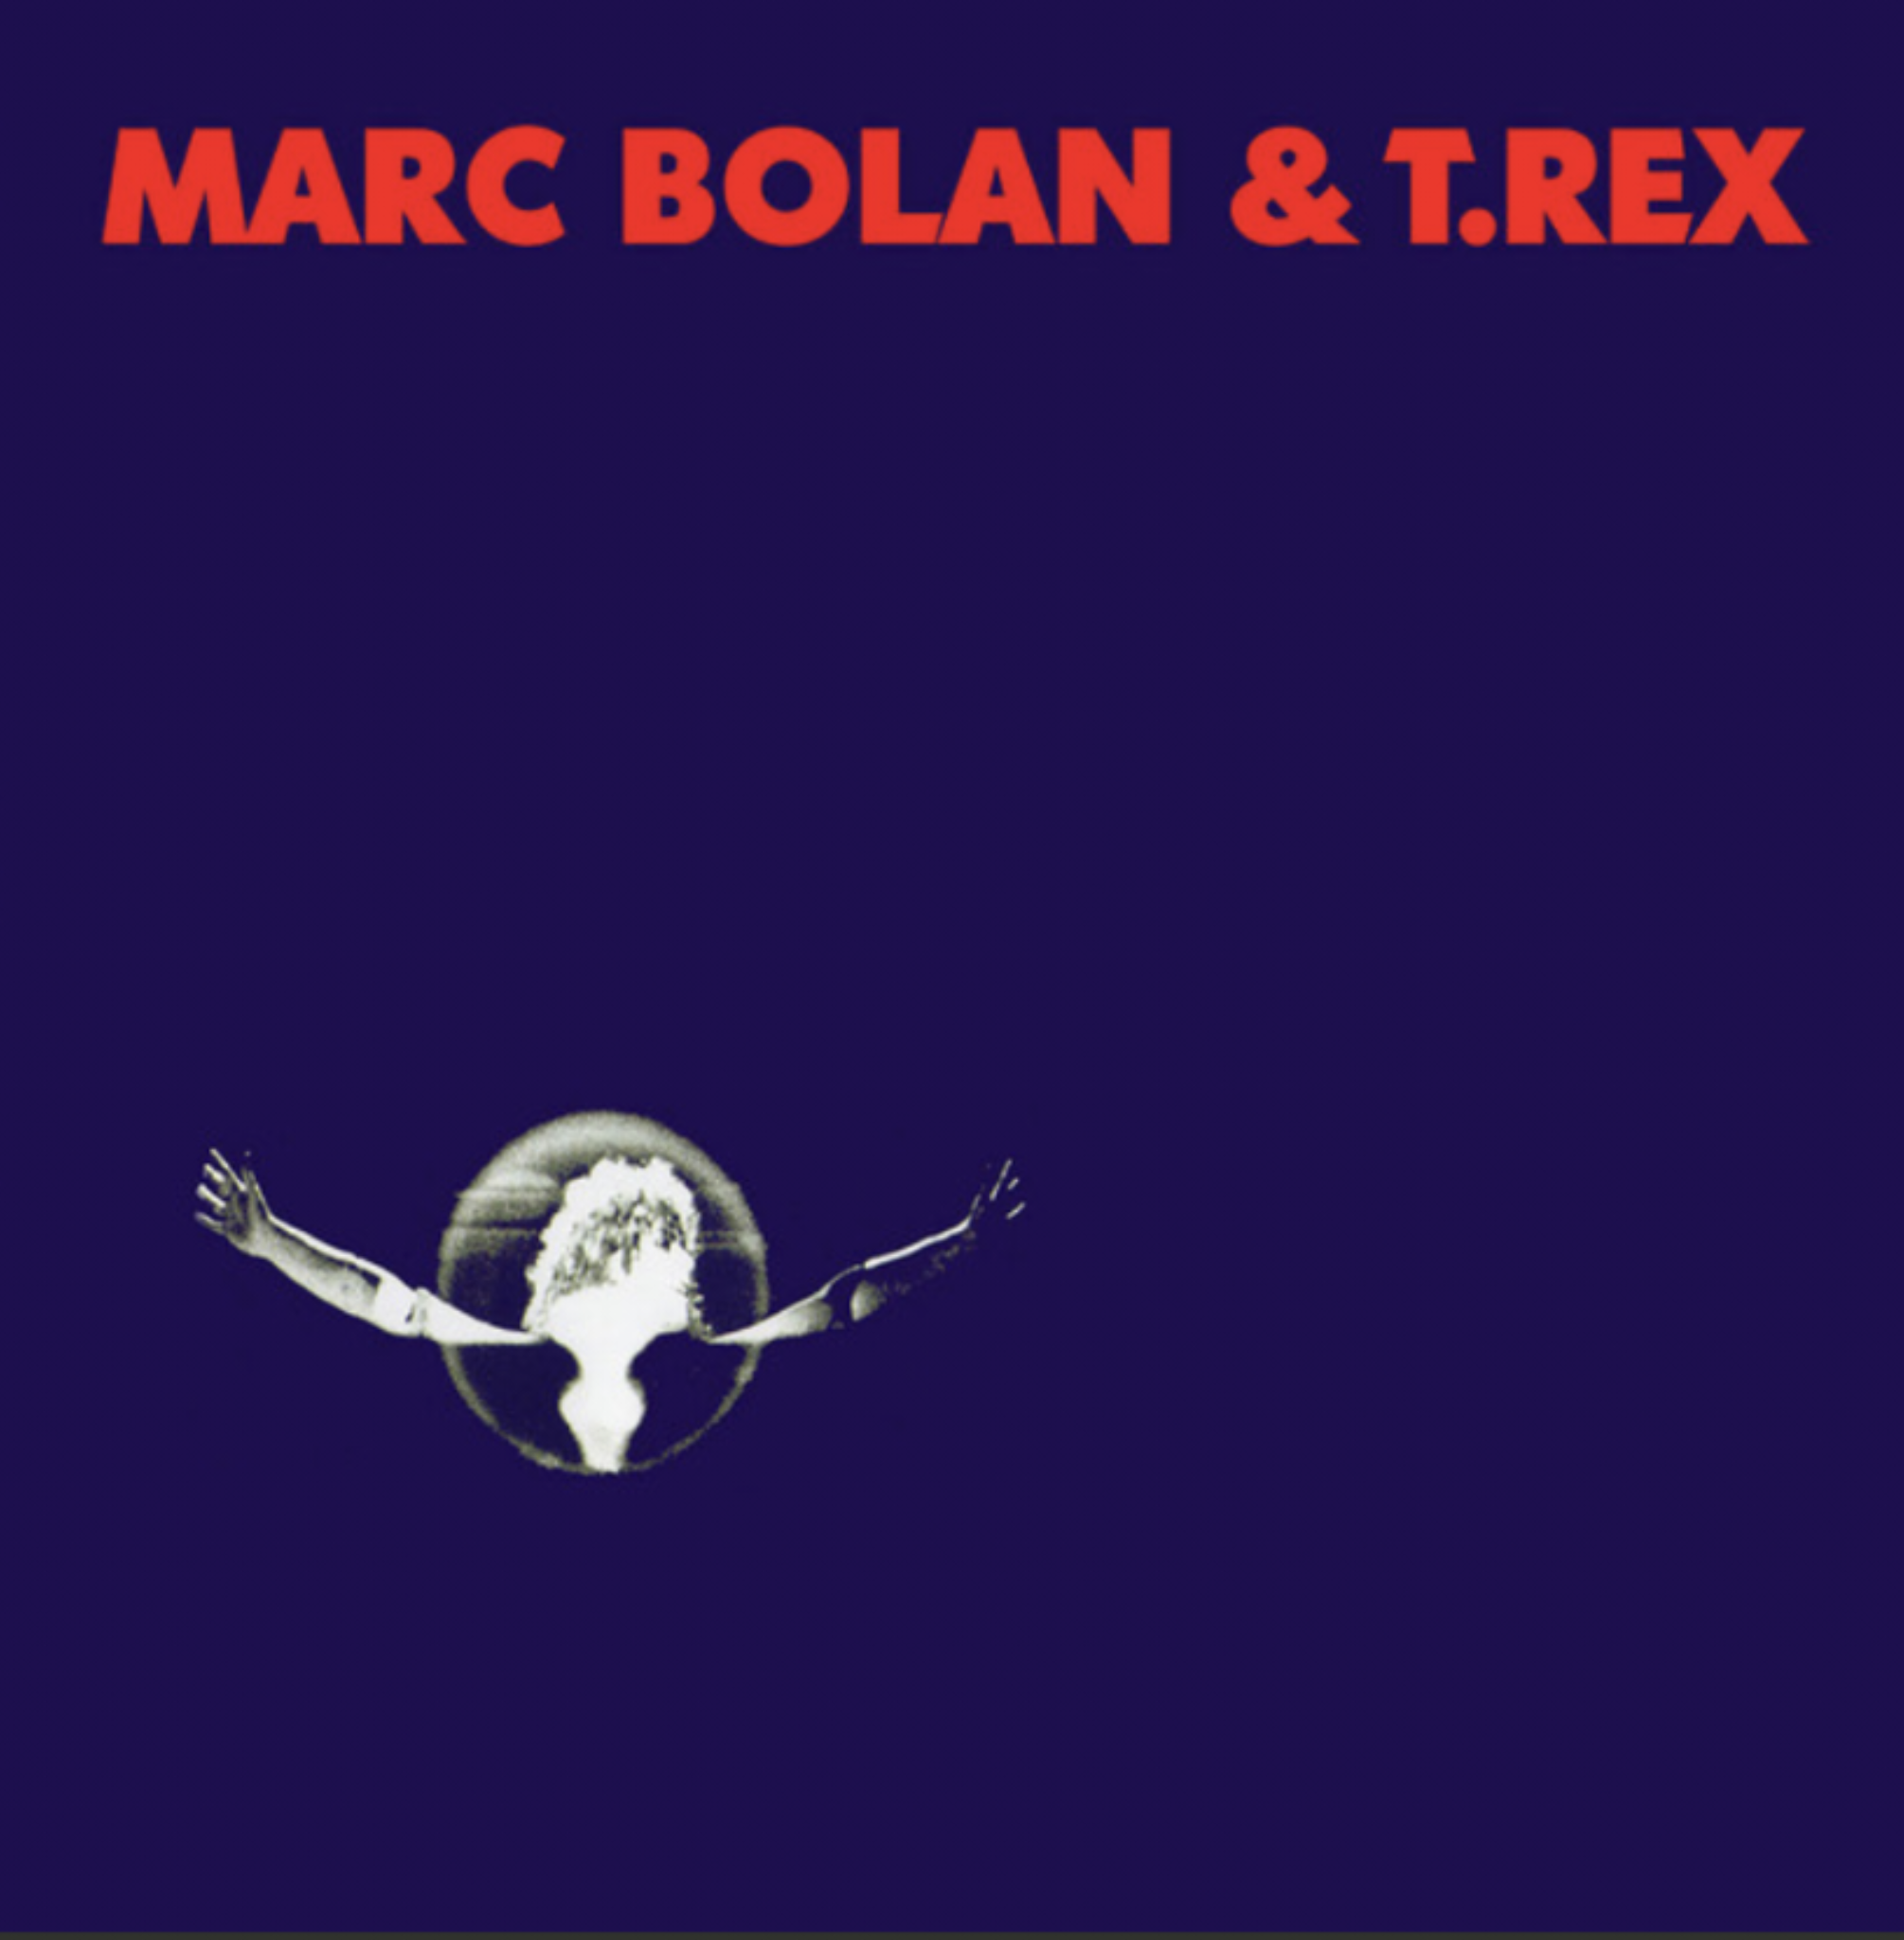 Marc Bolan & T. Rex – Baby Boomerang (1974 Working Version)